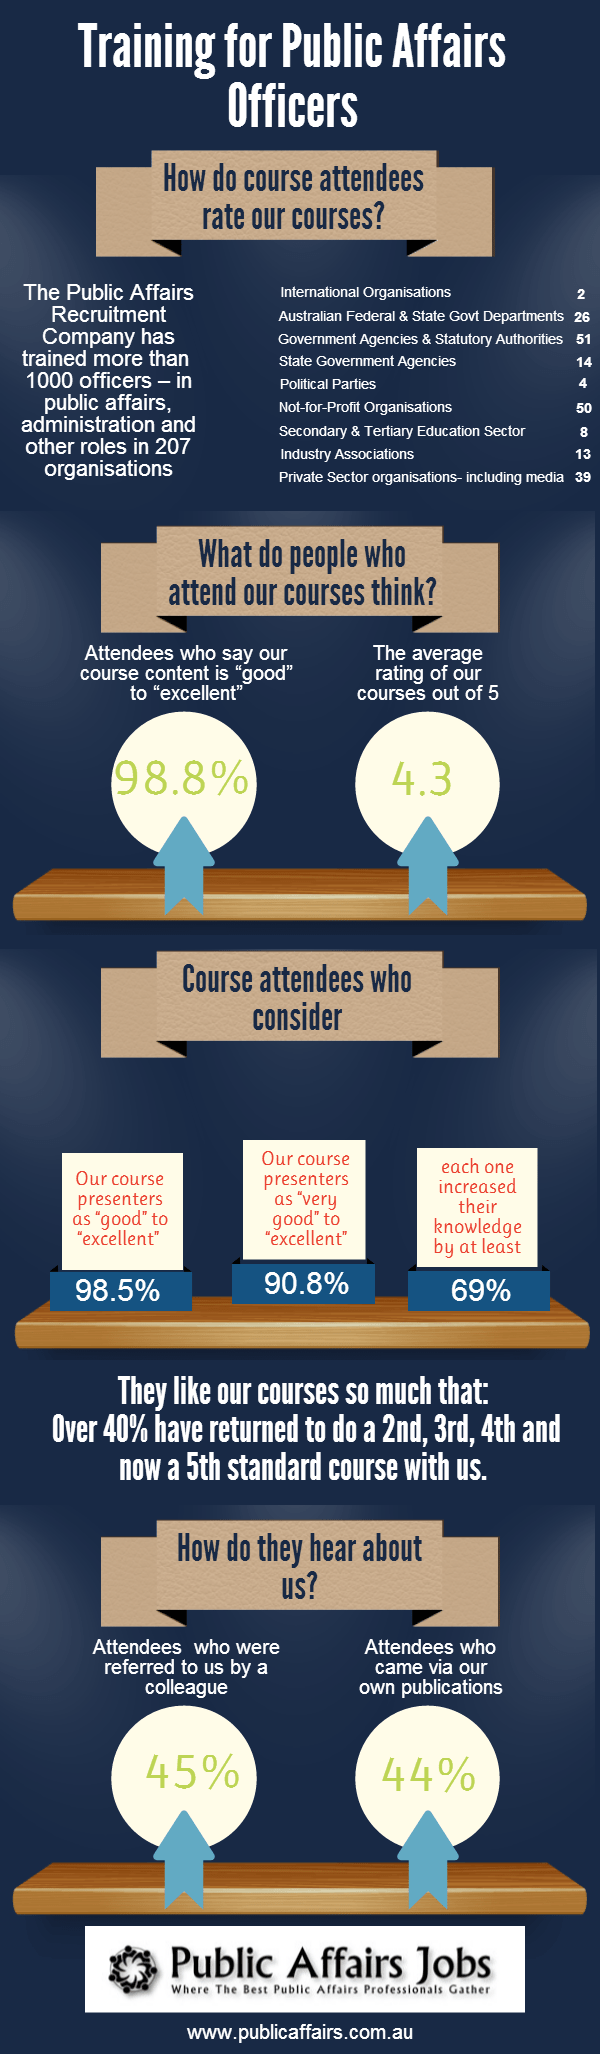 Infographic on how course attendees rate our courses.